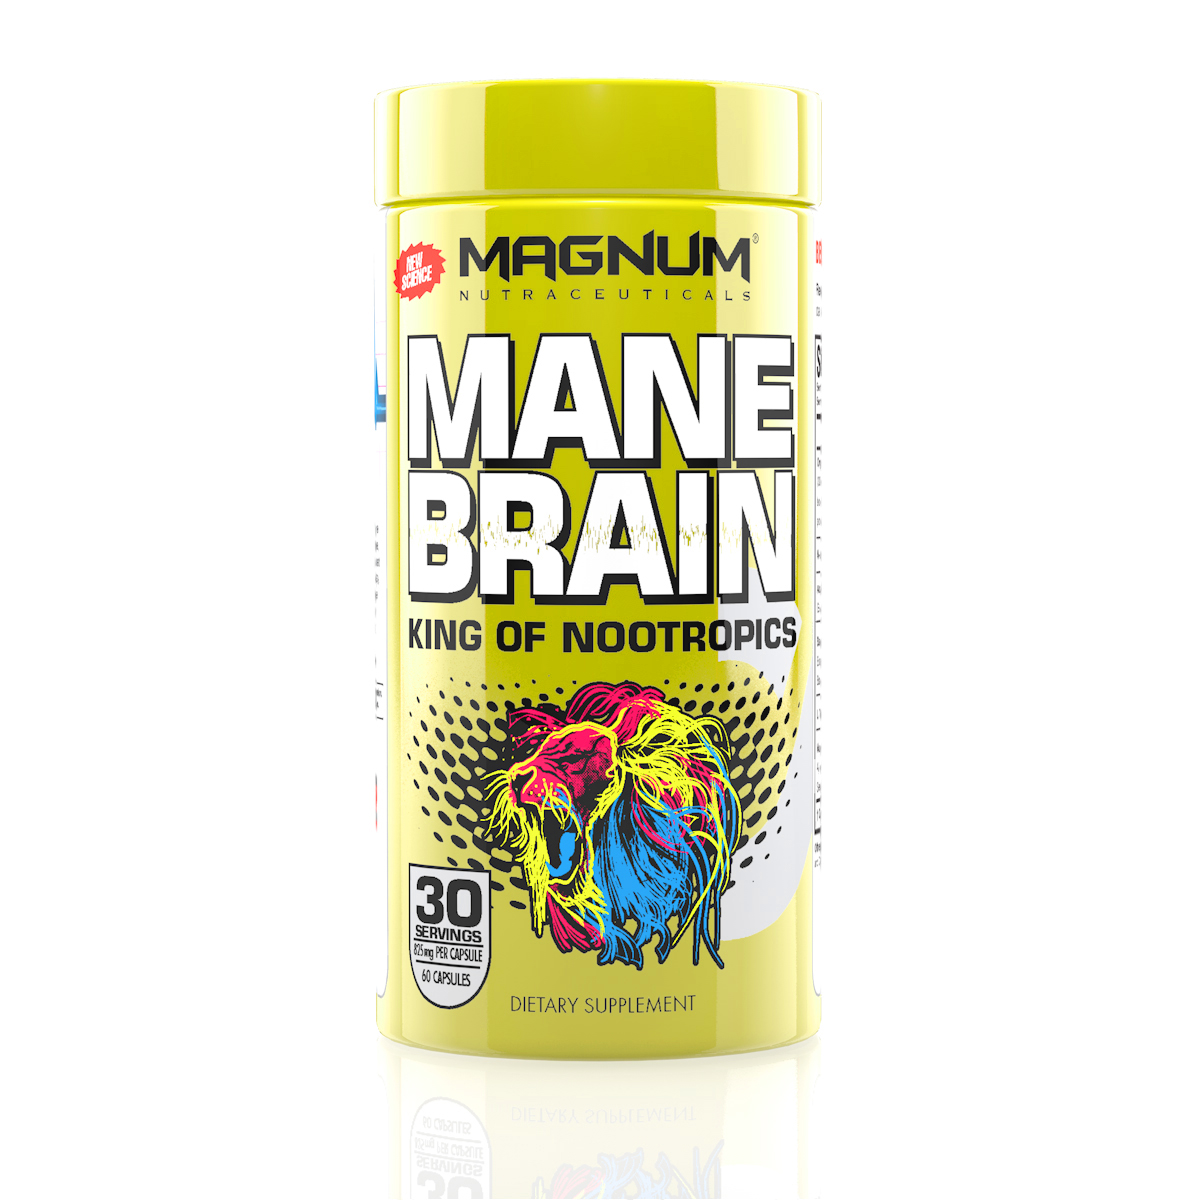 Magnum Mane Brain - The King of Nootropics, designed for all types of people. Athletes, Students, Professionals, Gamers, Competitors… enhance your brain power and keep up with your active lifestyle.• Maximizes Focus• Improves Memory• Boosts Brain Energy• Increases Clarity